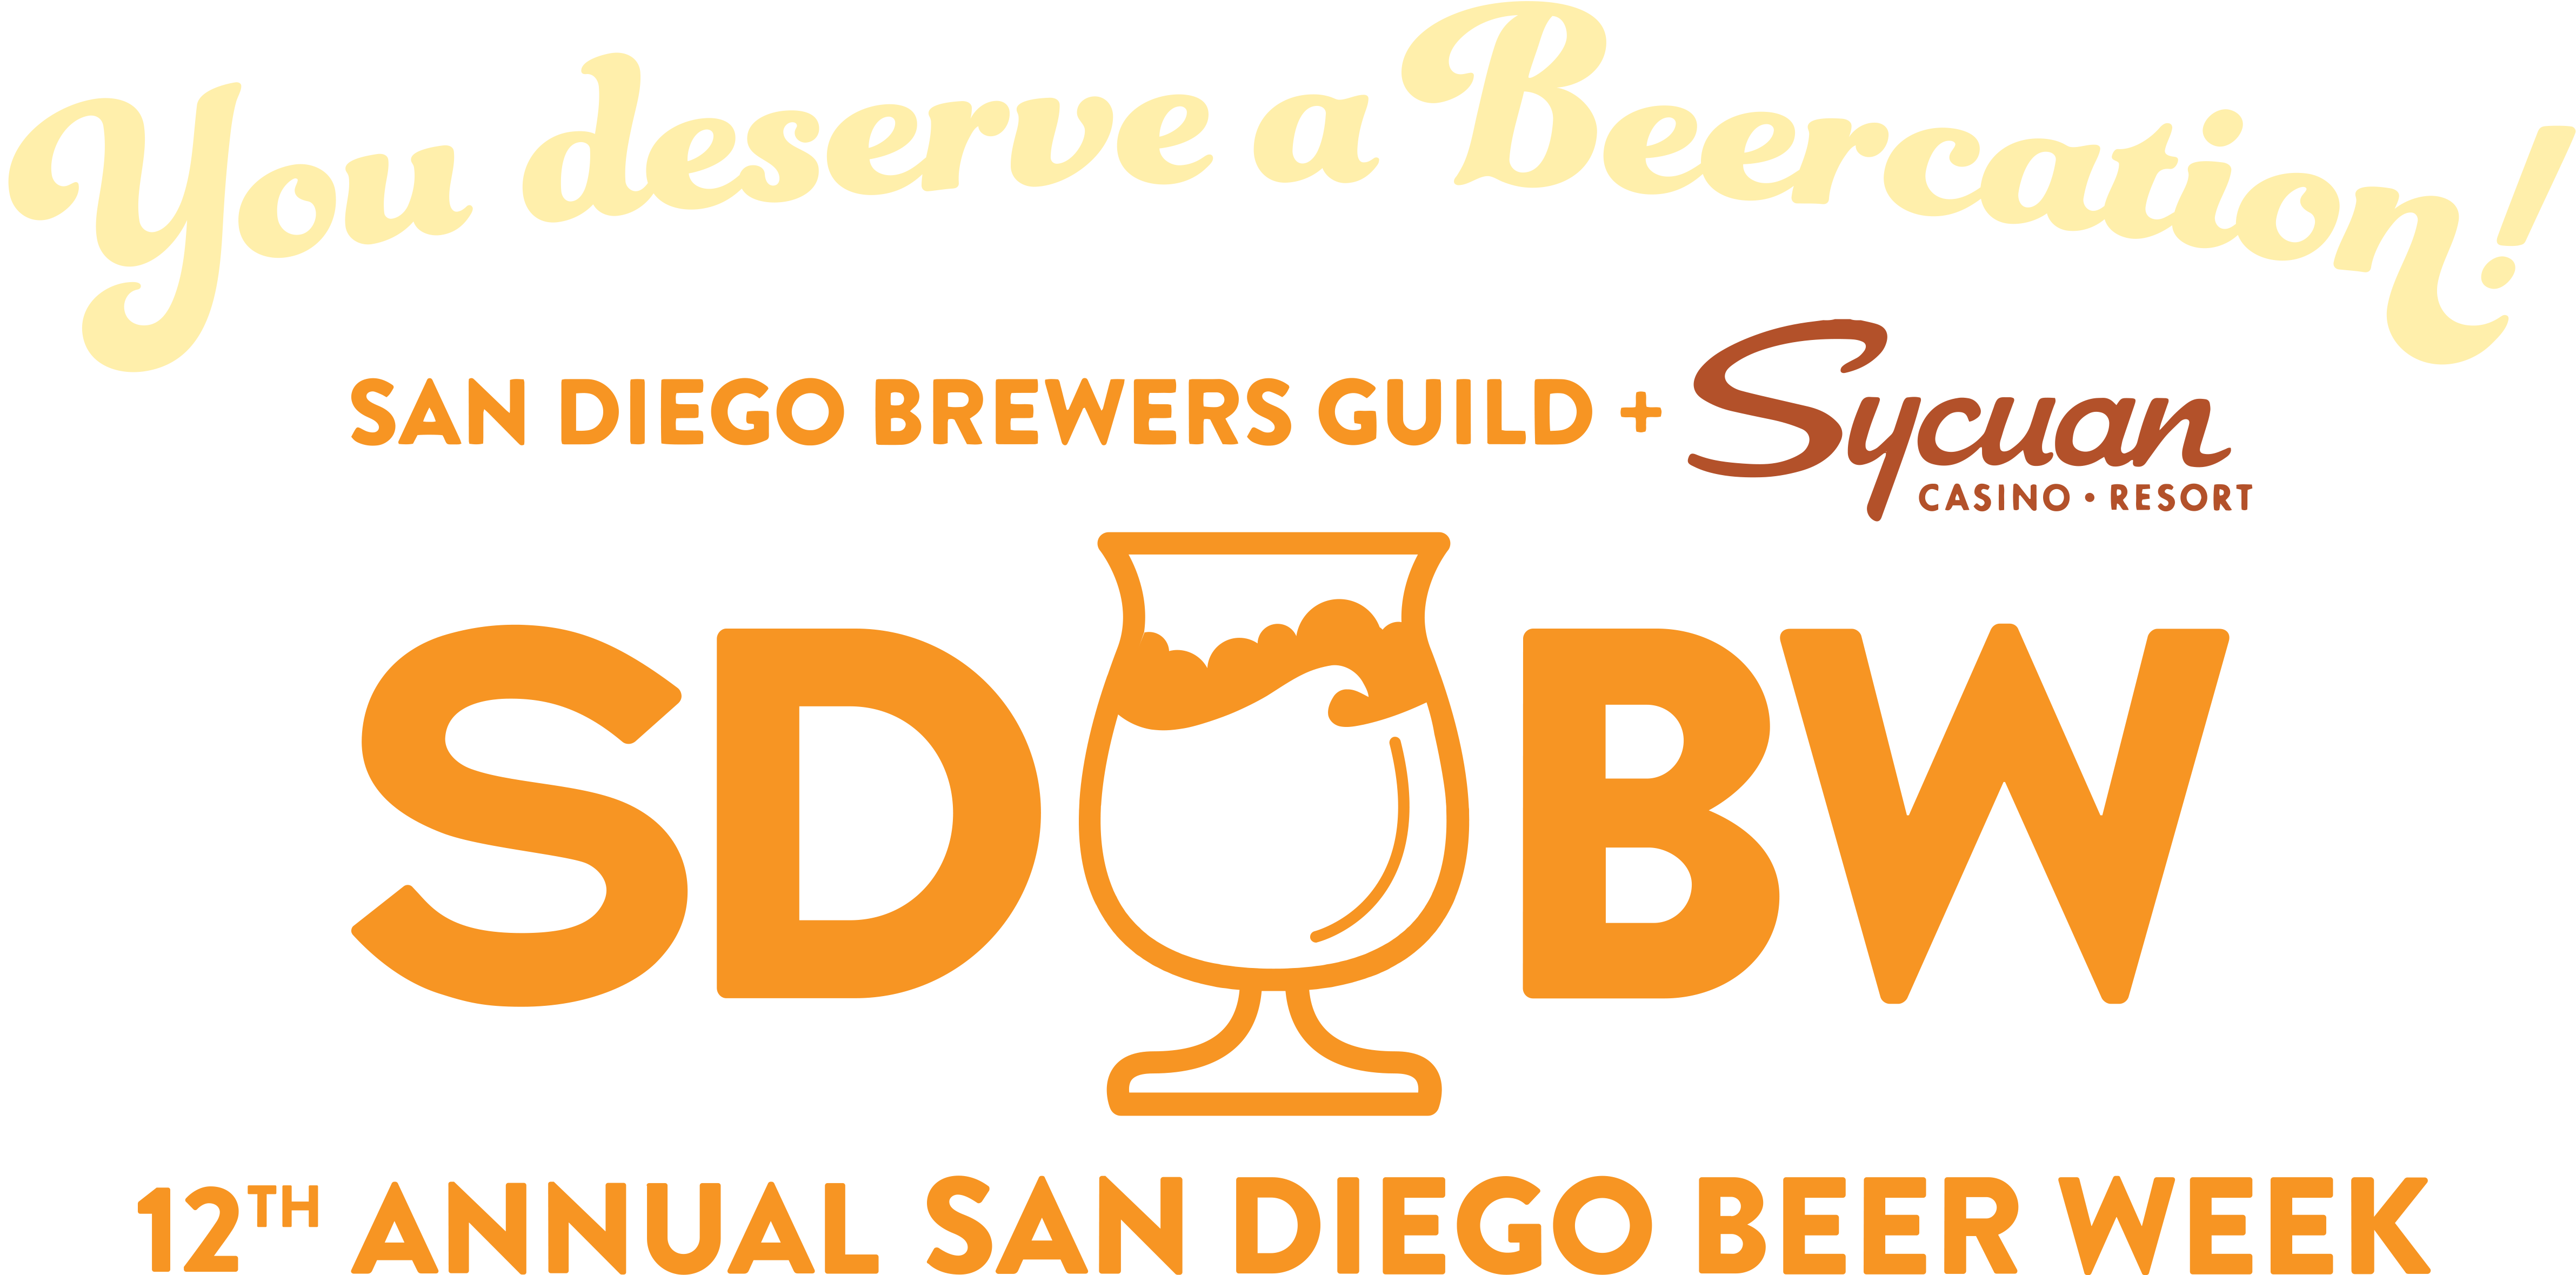 BEERCATION LOGO